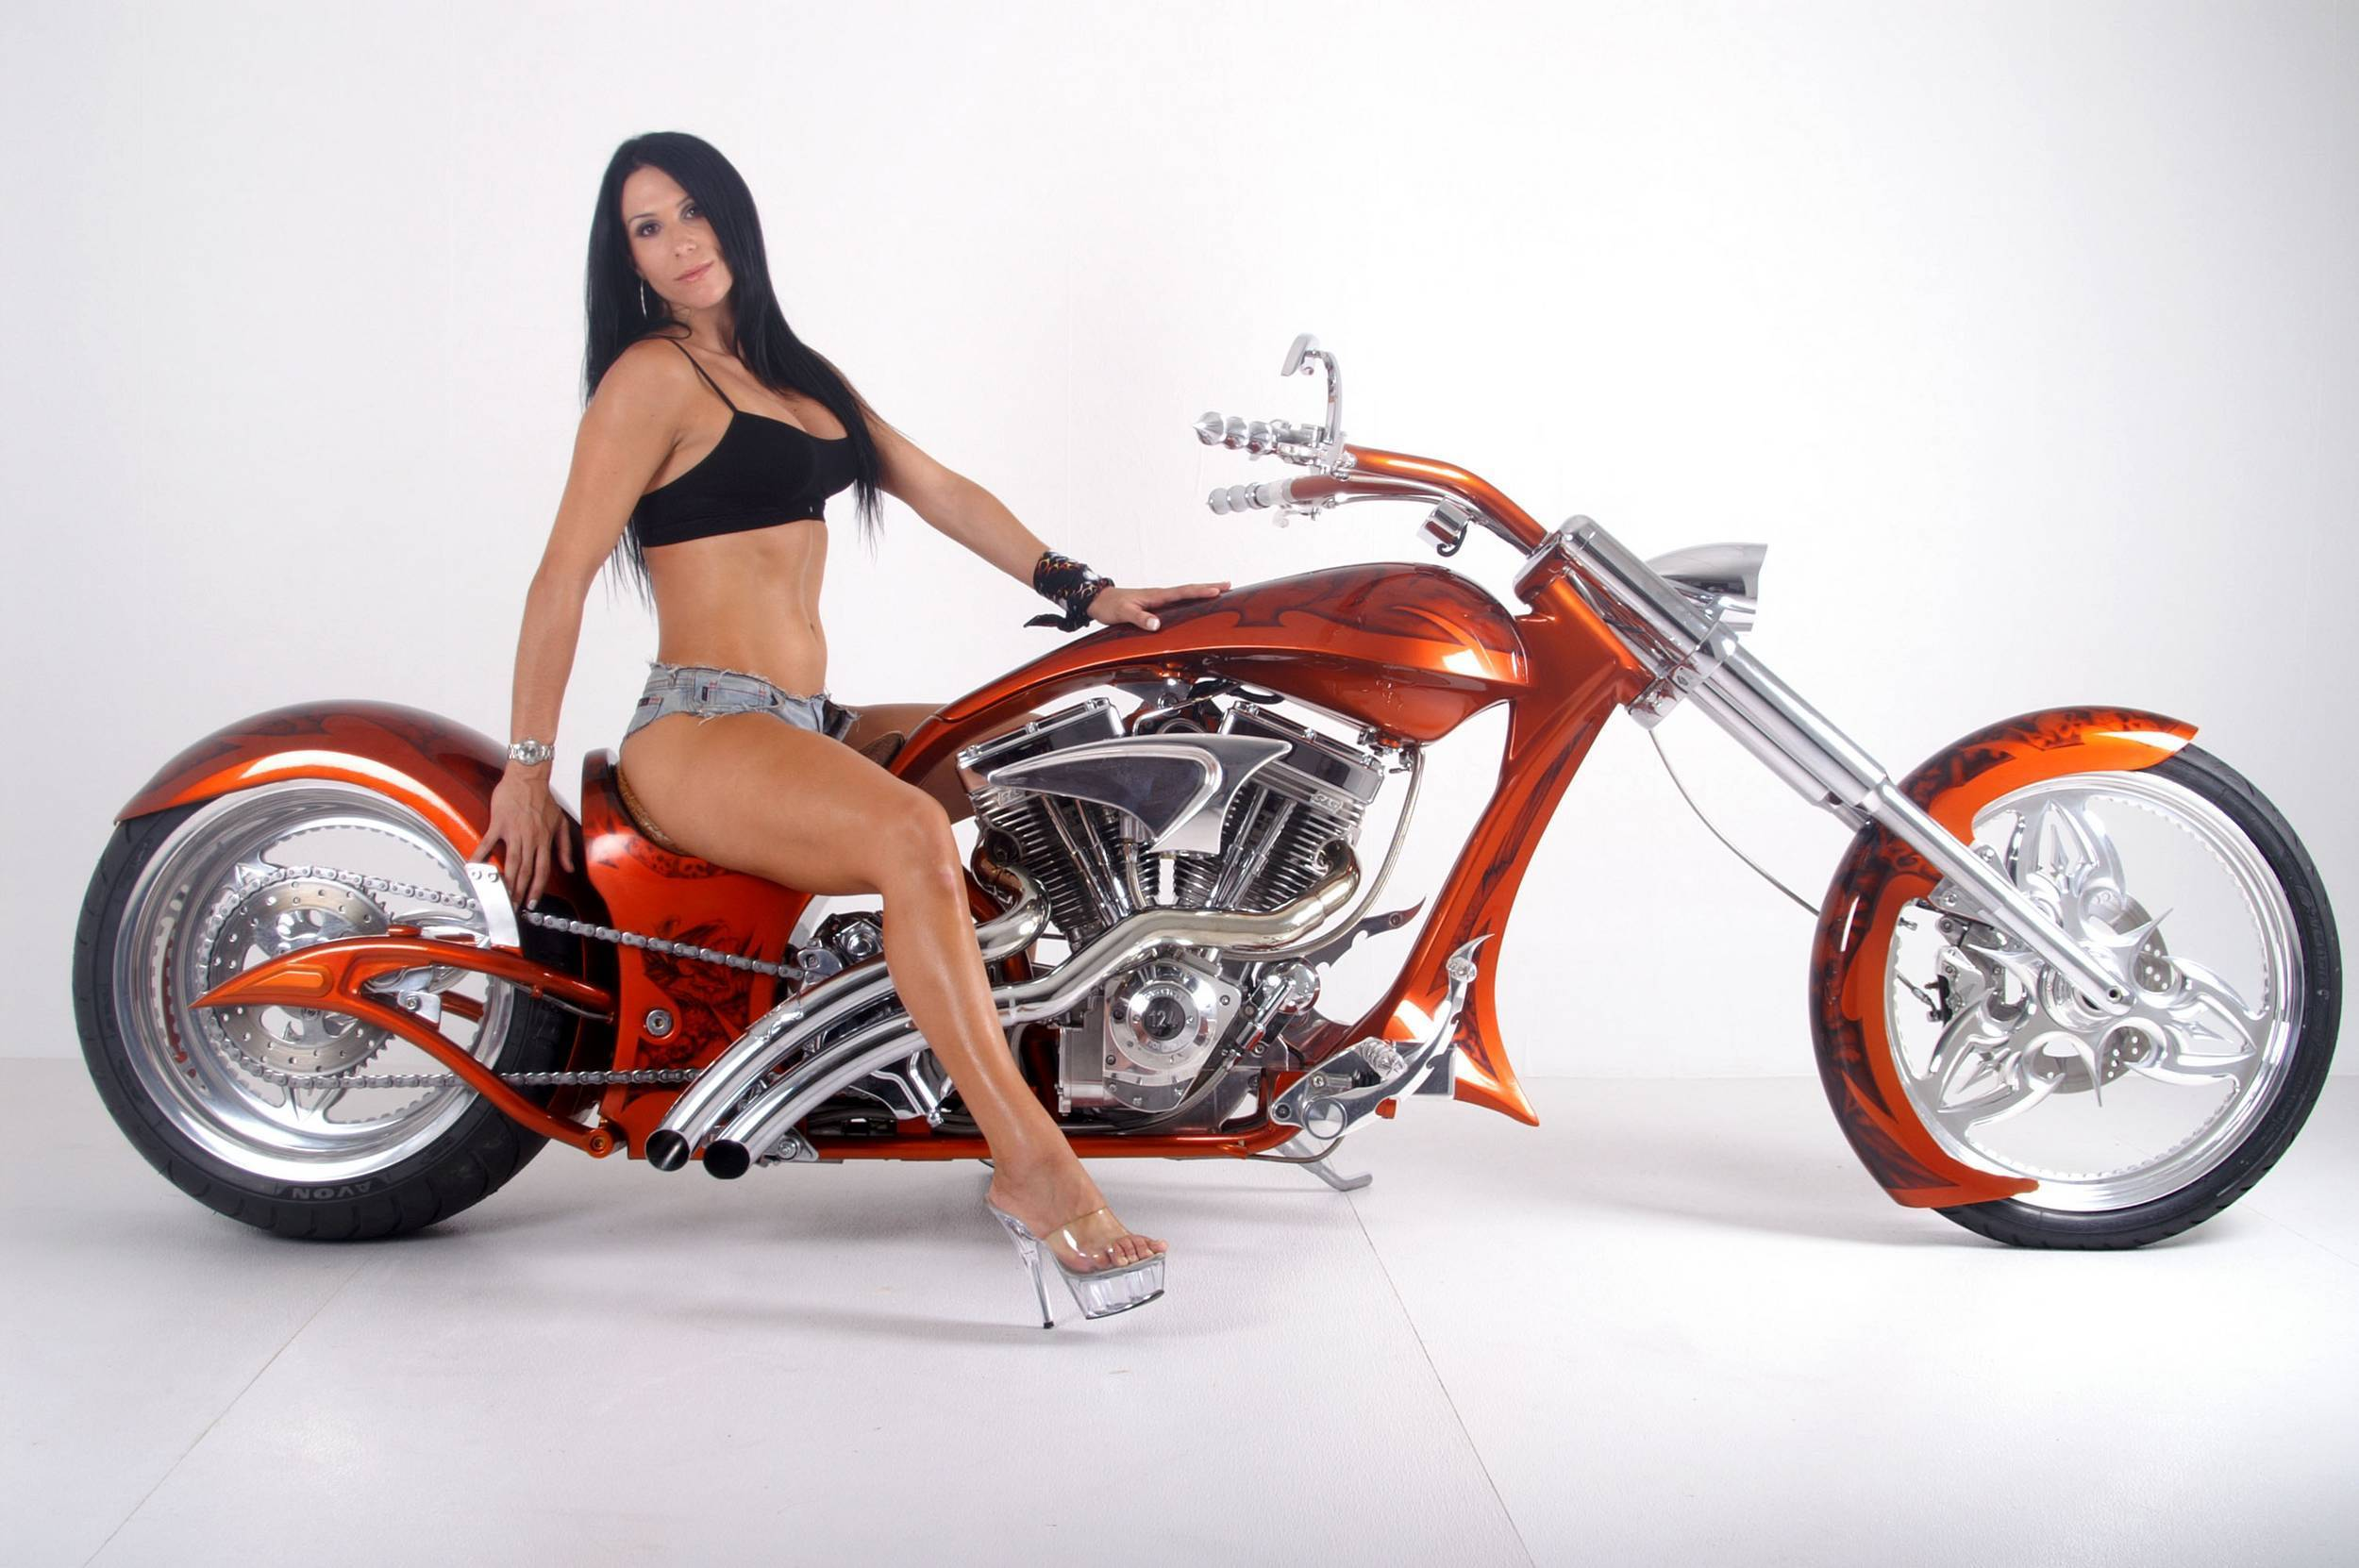 Harley-Davidson Motorcycle Choppers Girls 2500 x 1662 · 335 kB · jpeg